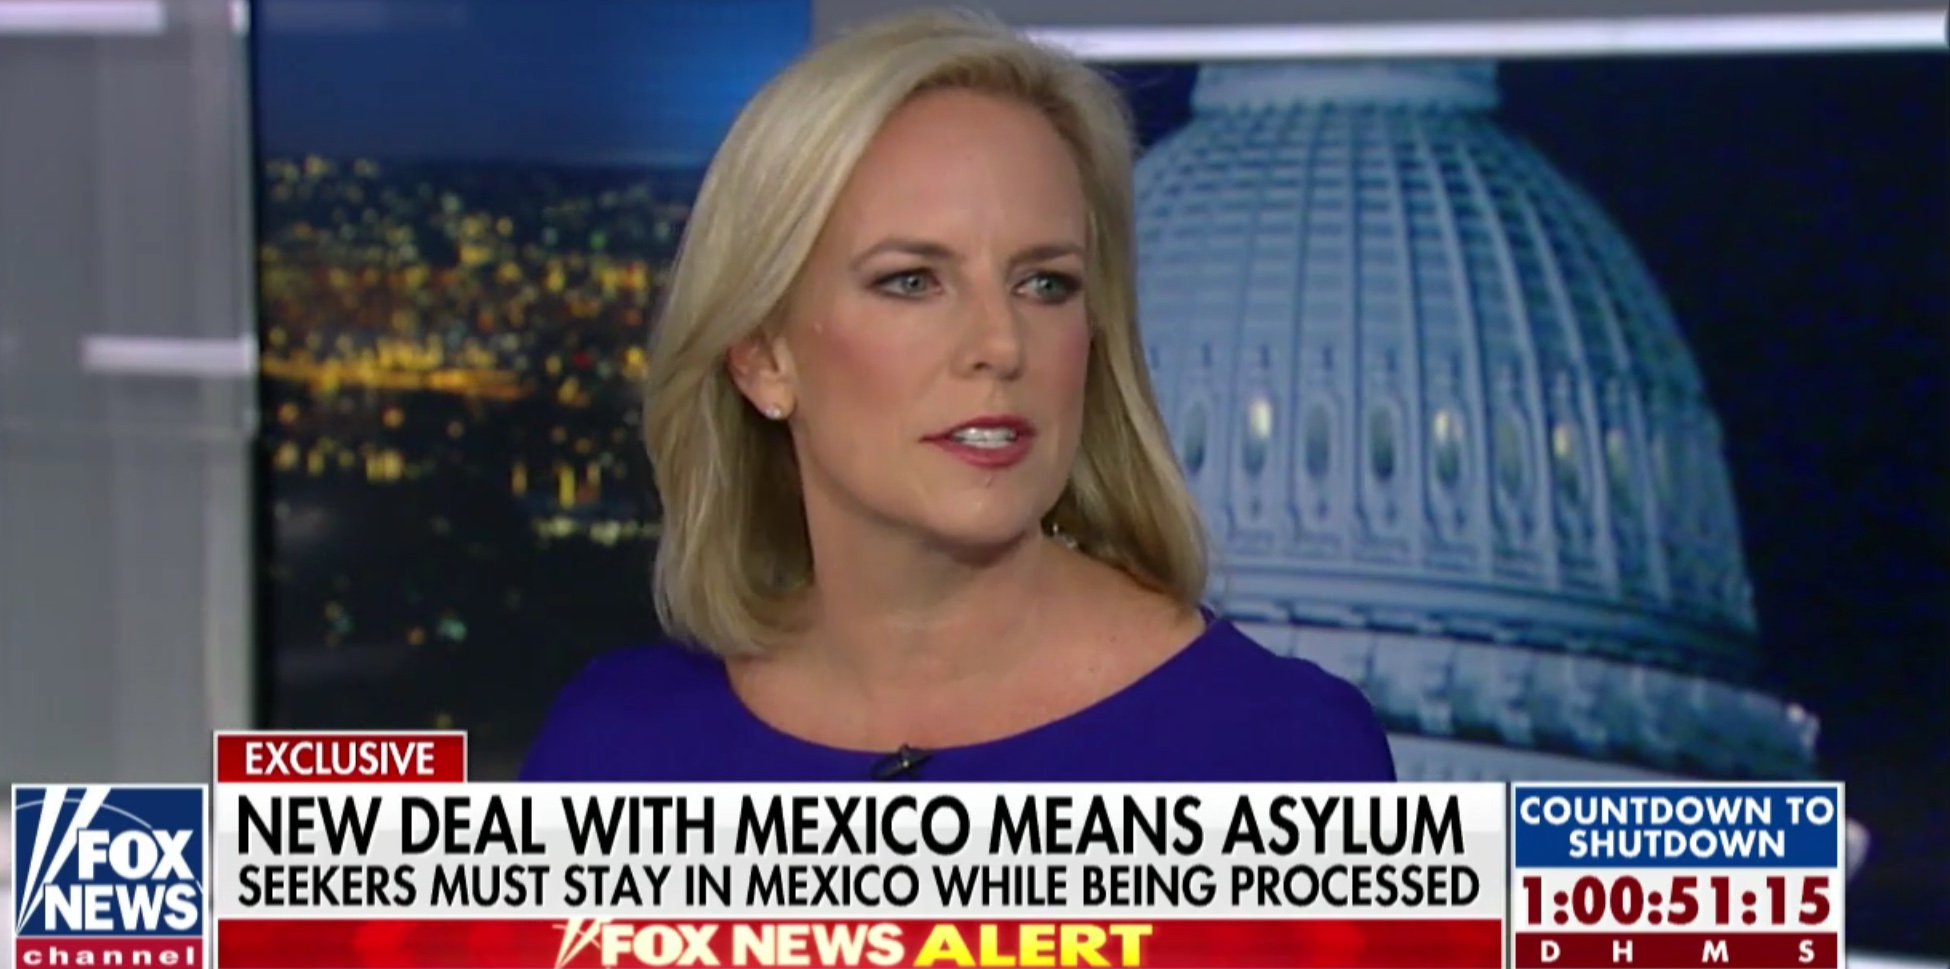 DHS Secretary Kirstjen Nielsen speaks to Fox News about refugee issues, Dec. 20, 2018. Fox News screenshot.